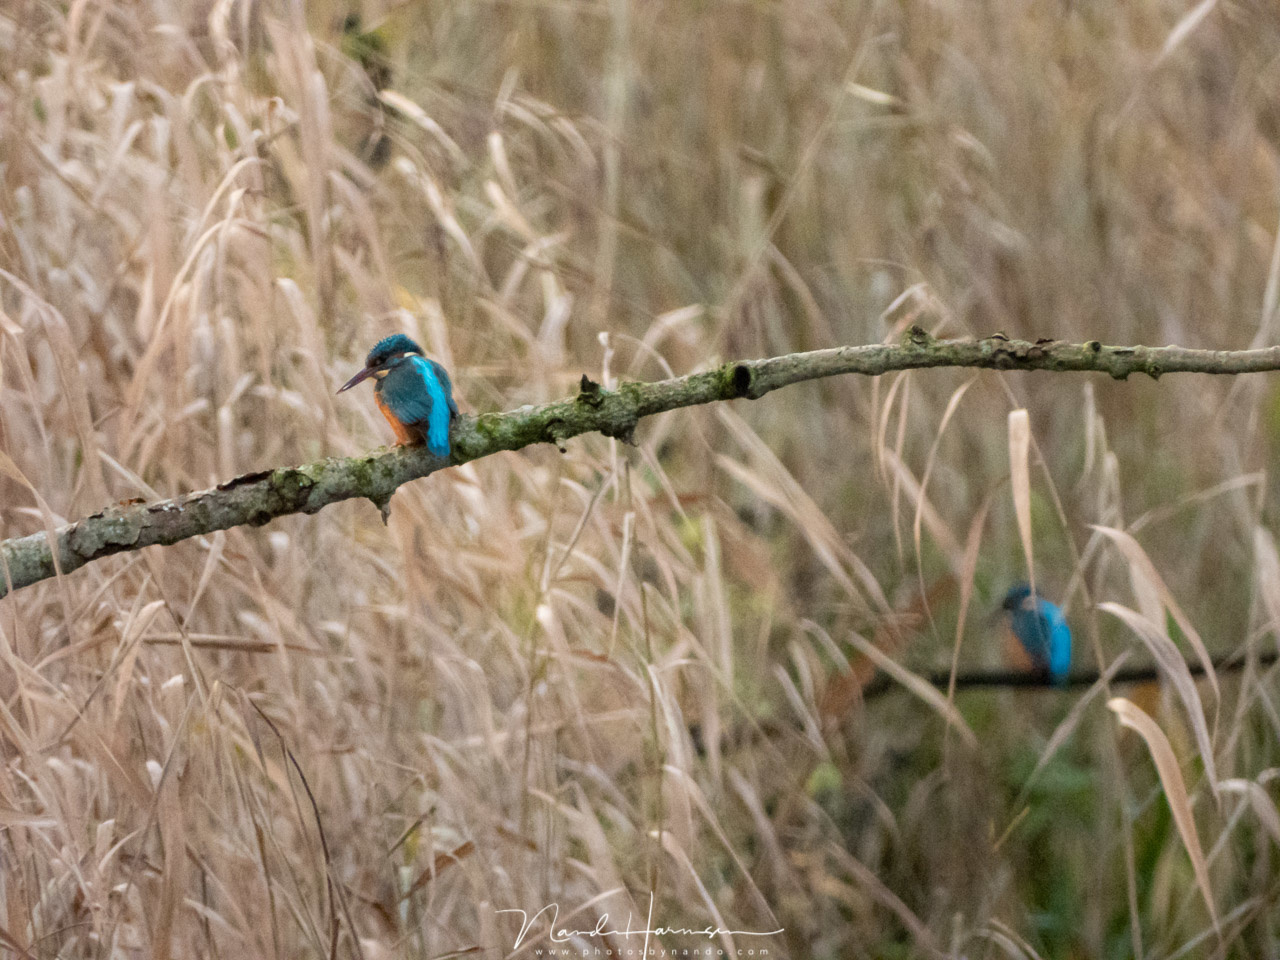 Two kingfisher birds at a creek nearby. Shot from a large distance using the maximum optical zoom capabilities of the Coolpix P1000. Unfortunately the high ISO level is ruining the quality. (3000mm (FF equivalent) - ISO1600 - f/8 - 1/100)